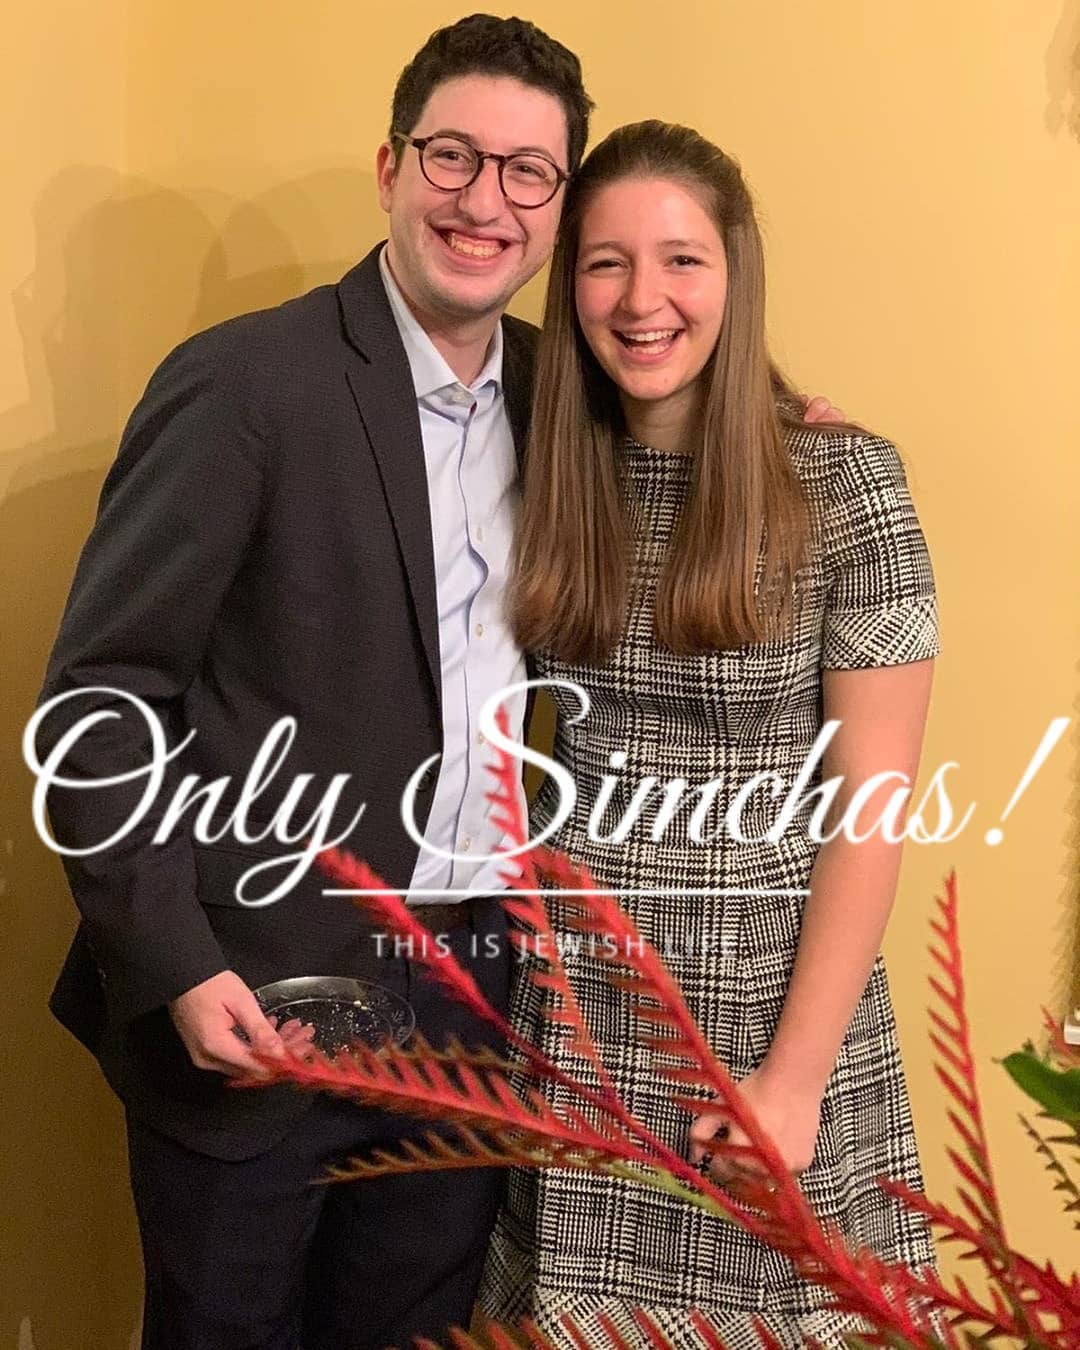 Engagement of Zachary Schechter (#Woodmere) to Chana Tropp (#Teaneck)!! #onlysimchas